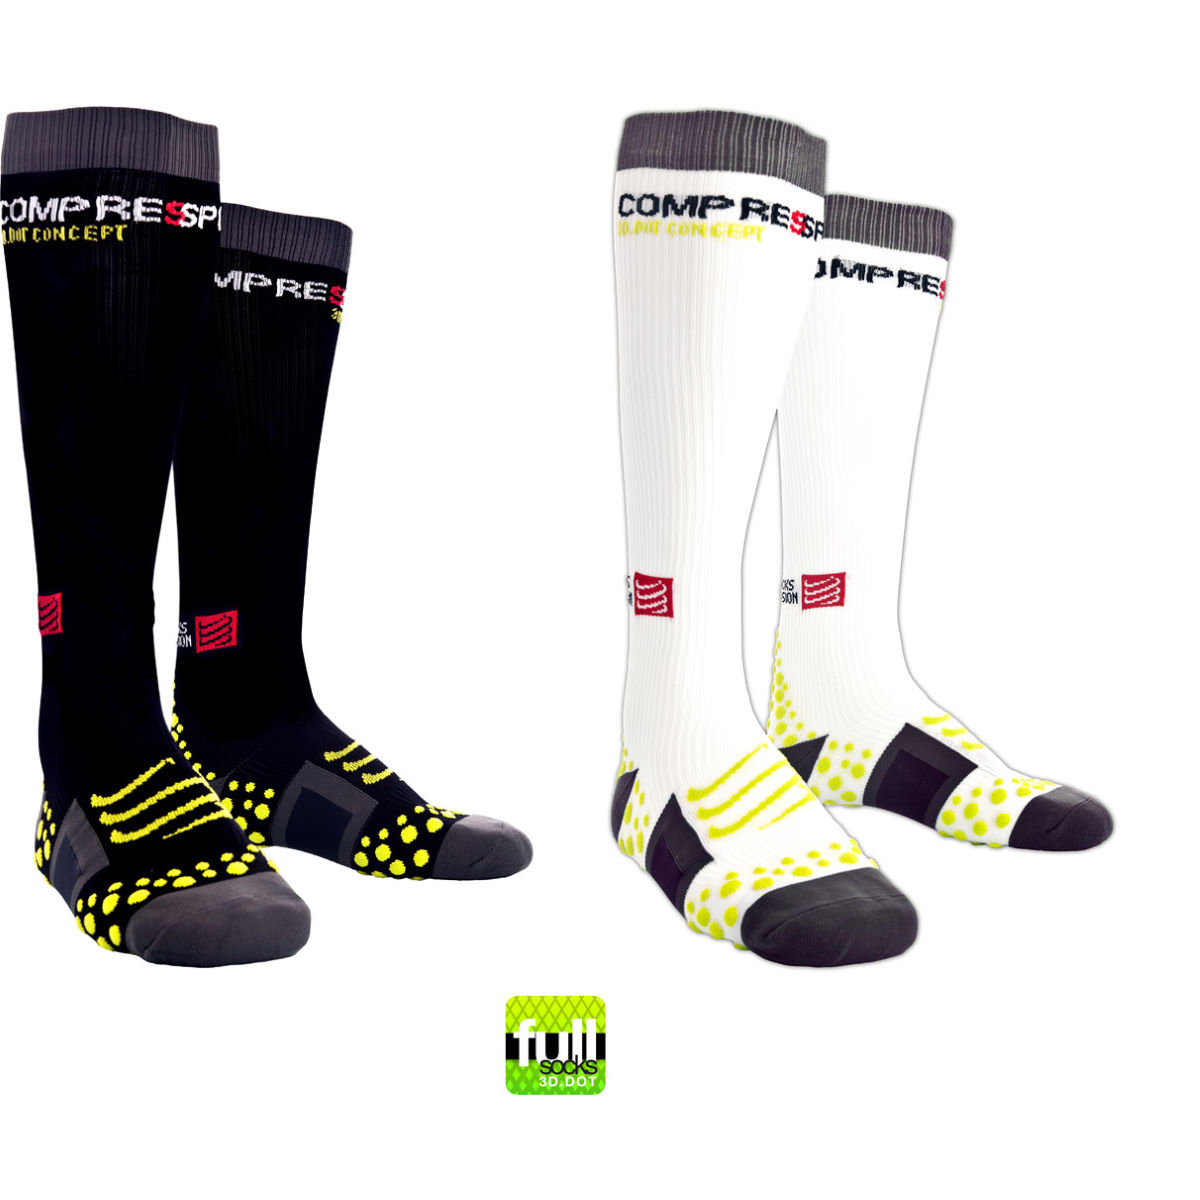 Compressport Full Sock 3D Dot Compression Sock